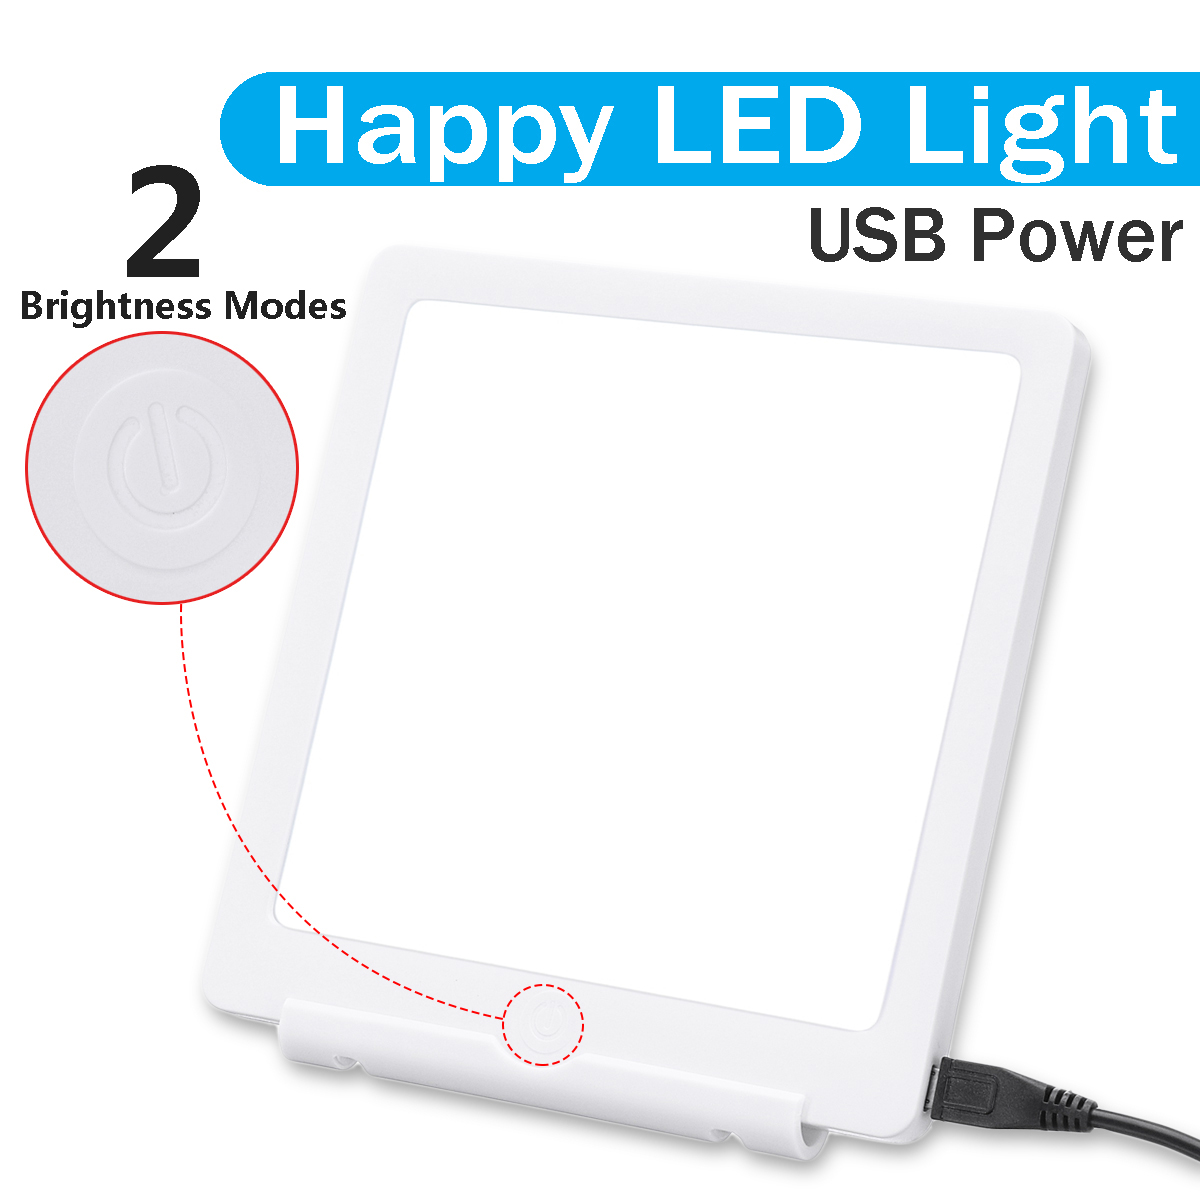 LED Lamp 5W SAD Phototherapy Light 10000 LUX Bionic-Daylight Affective Disorder USB Therapy Adjustable Relief Listless FatiguedLED Lamp 5W SAD Phototherapy Light 10000 LUX Bionic-Daylight Affective Disorder USB Therapy Adjustable Relief Listless Fatigued